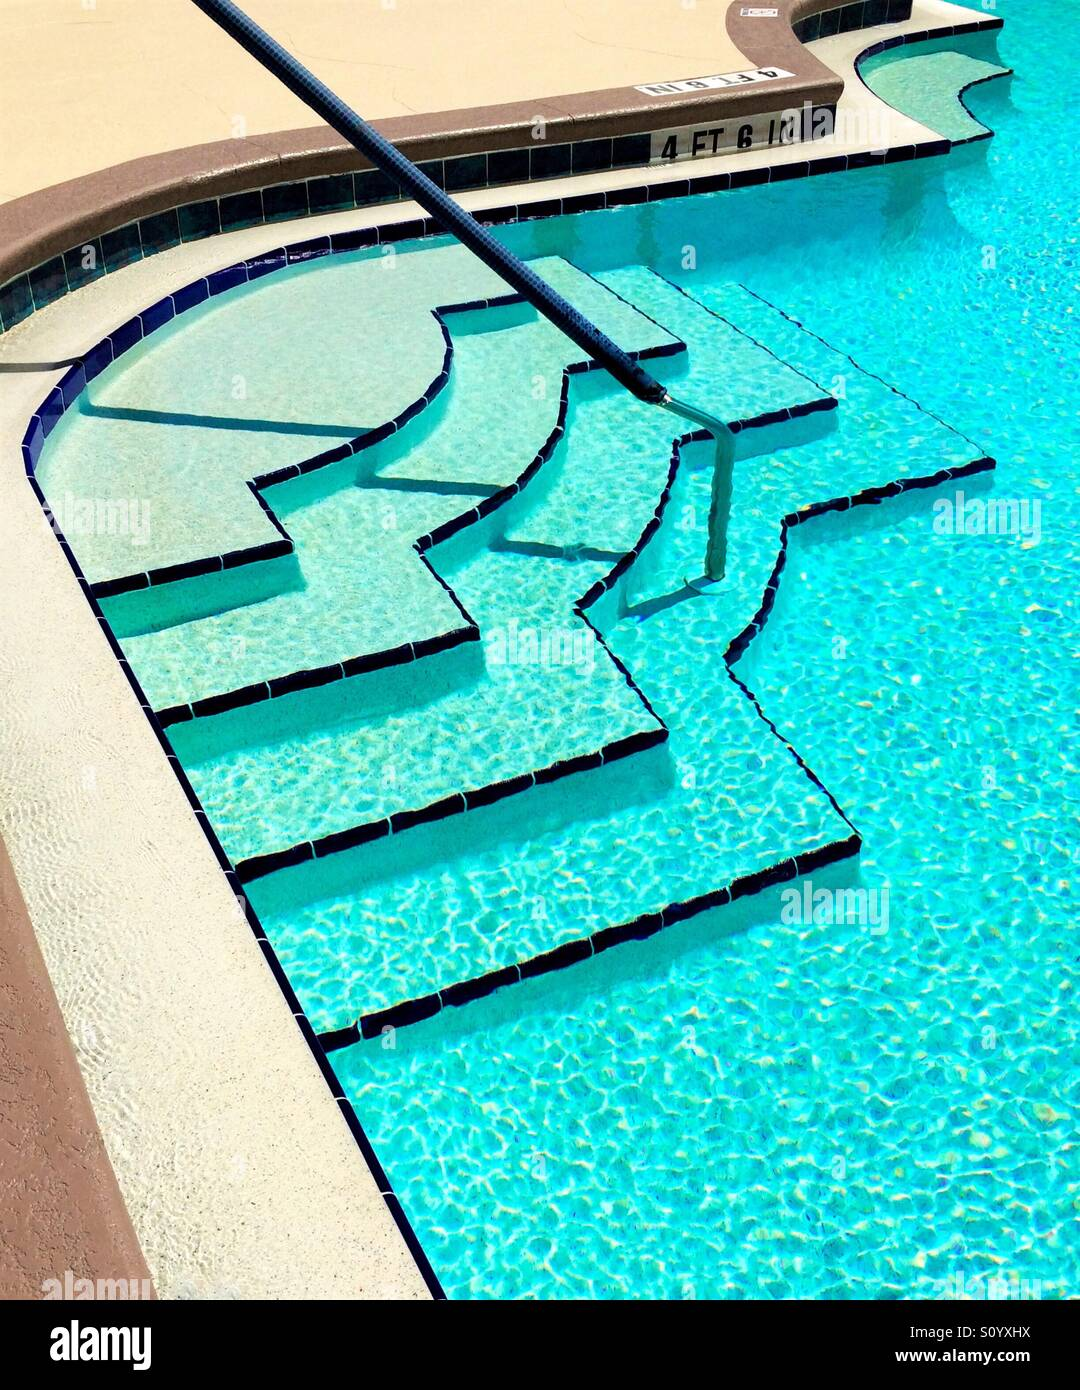 Angular abstract pattern and lines created by pool edges and steps - Stock Image